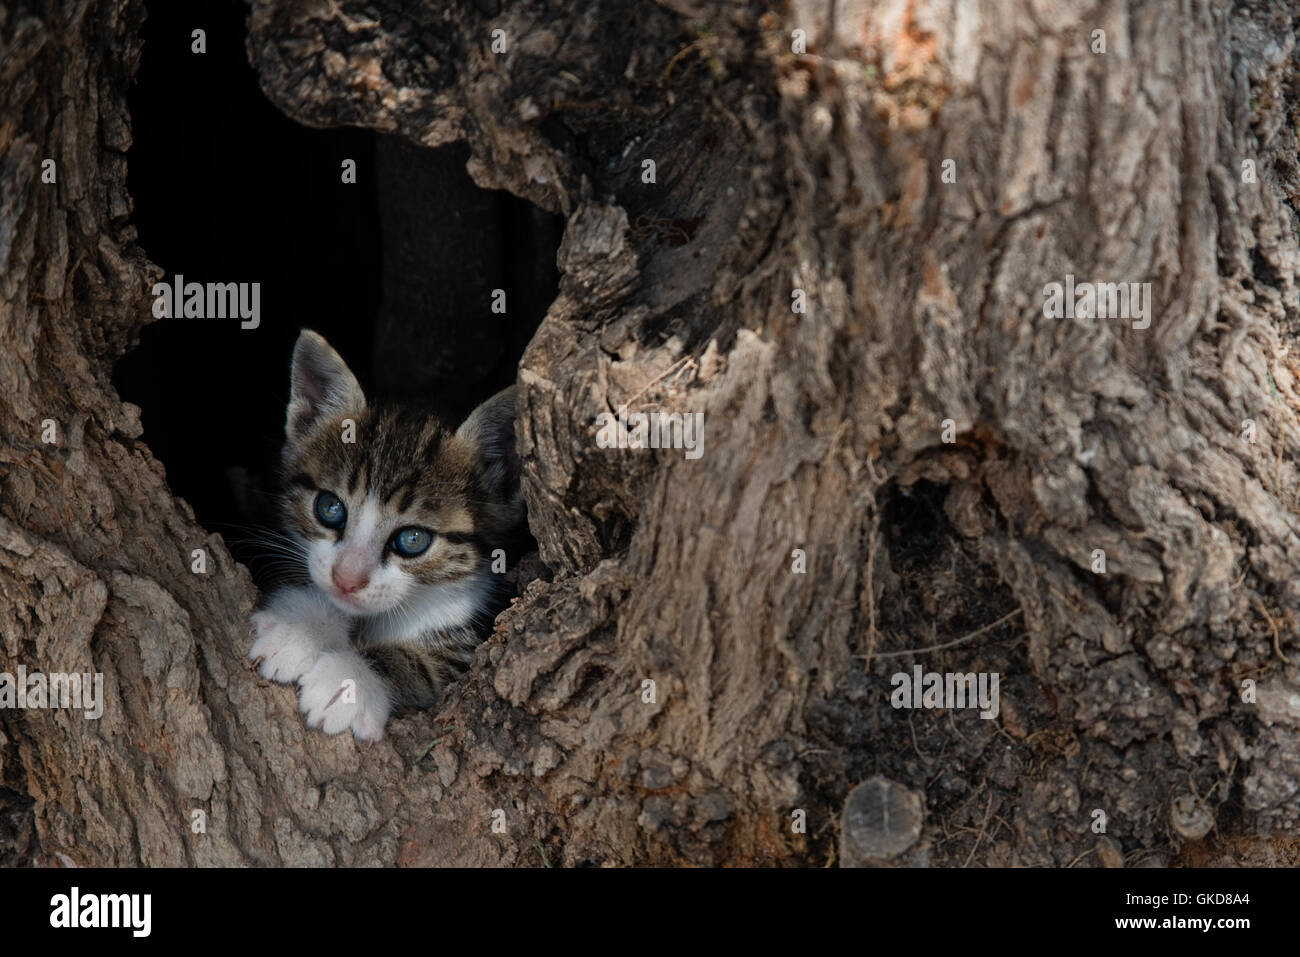 Playing hide-and-seek Little cat playing hide-and-seek with me, hiding itself into an empty tree. - Stock Image